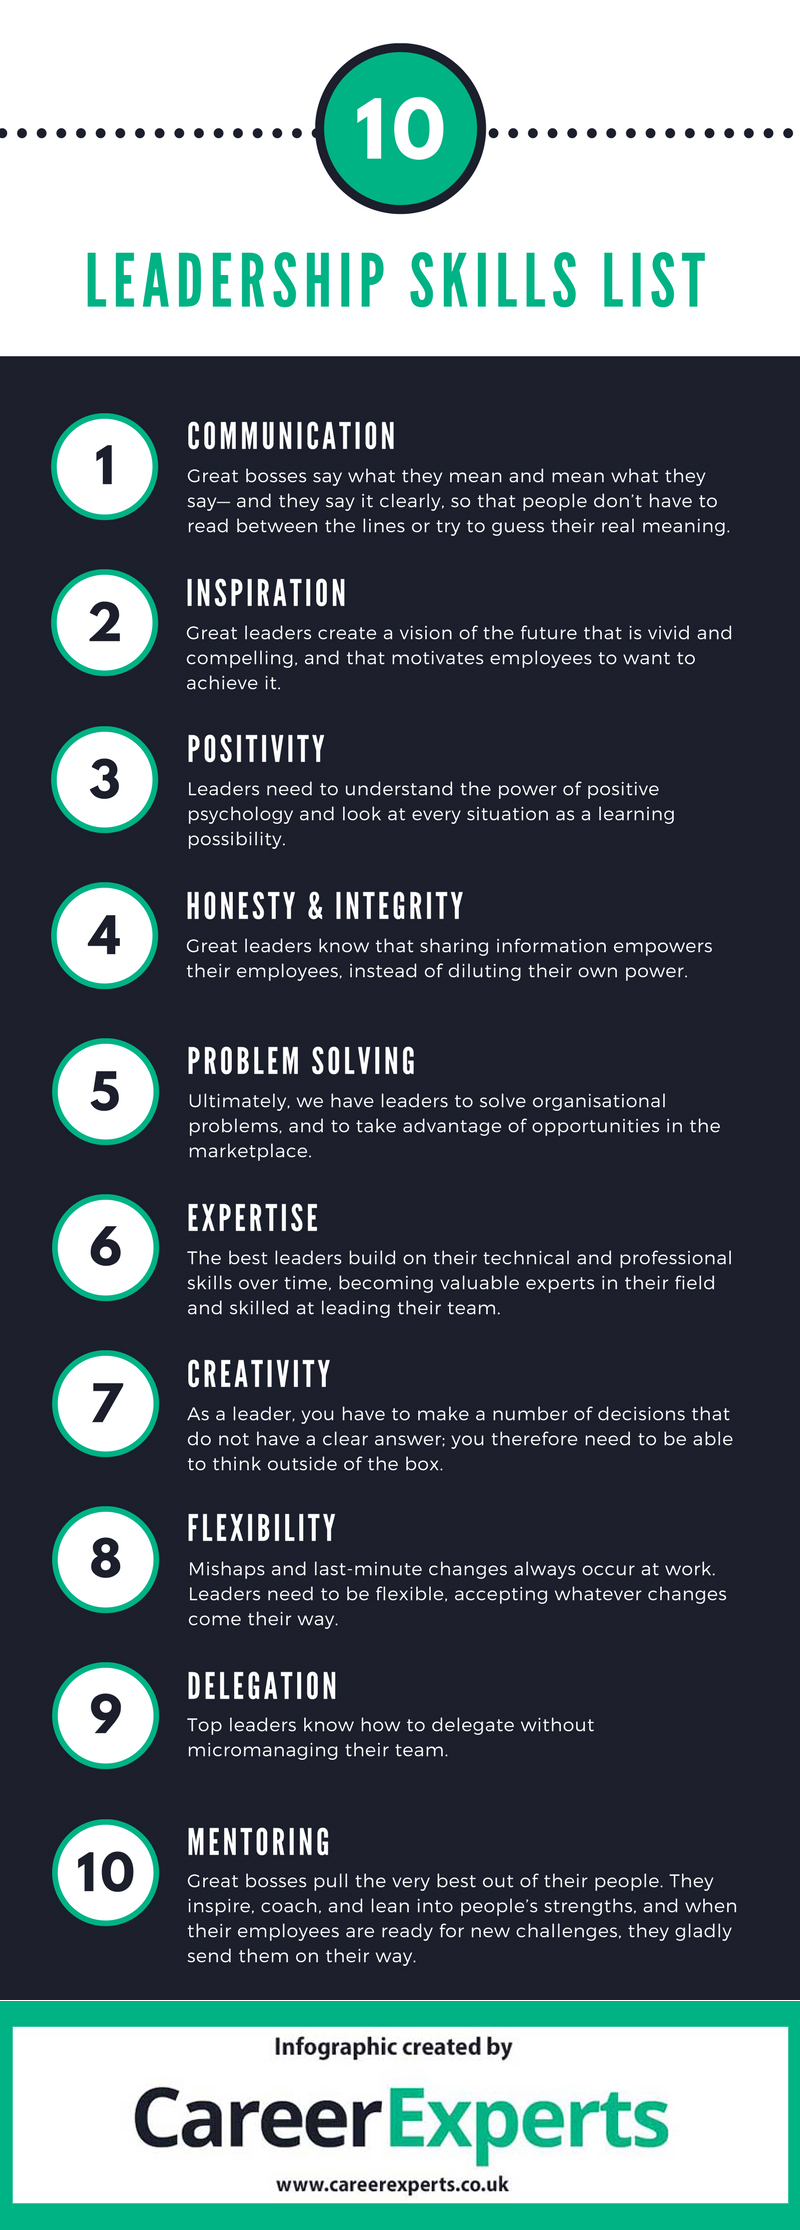 Leadership skills list infographic